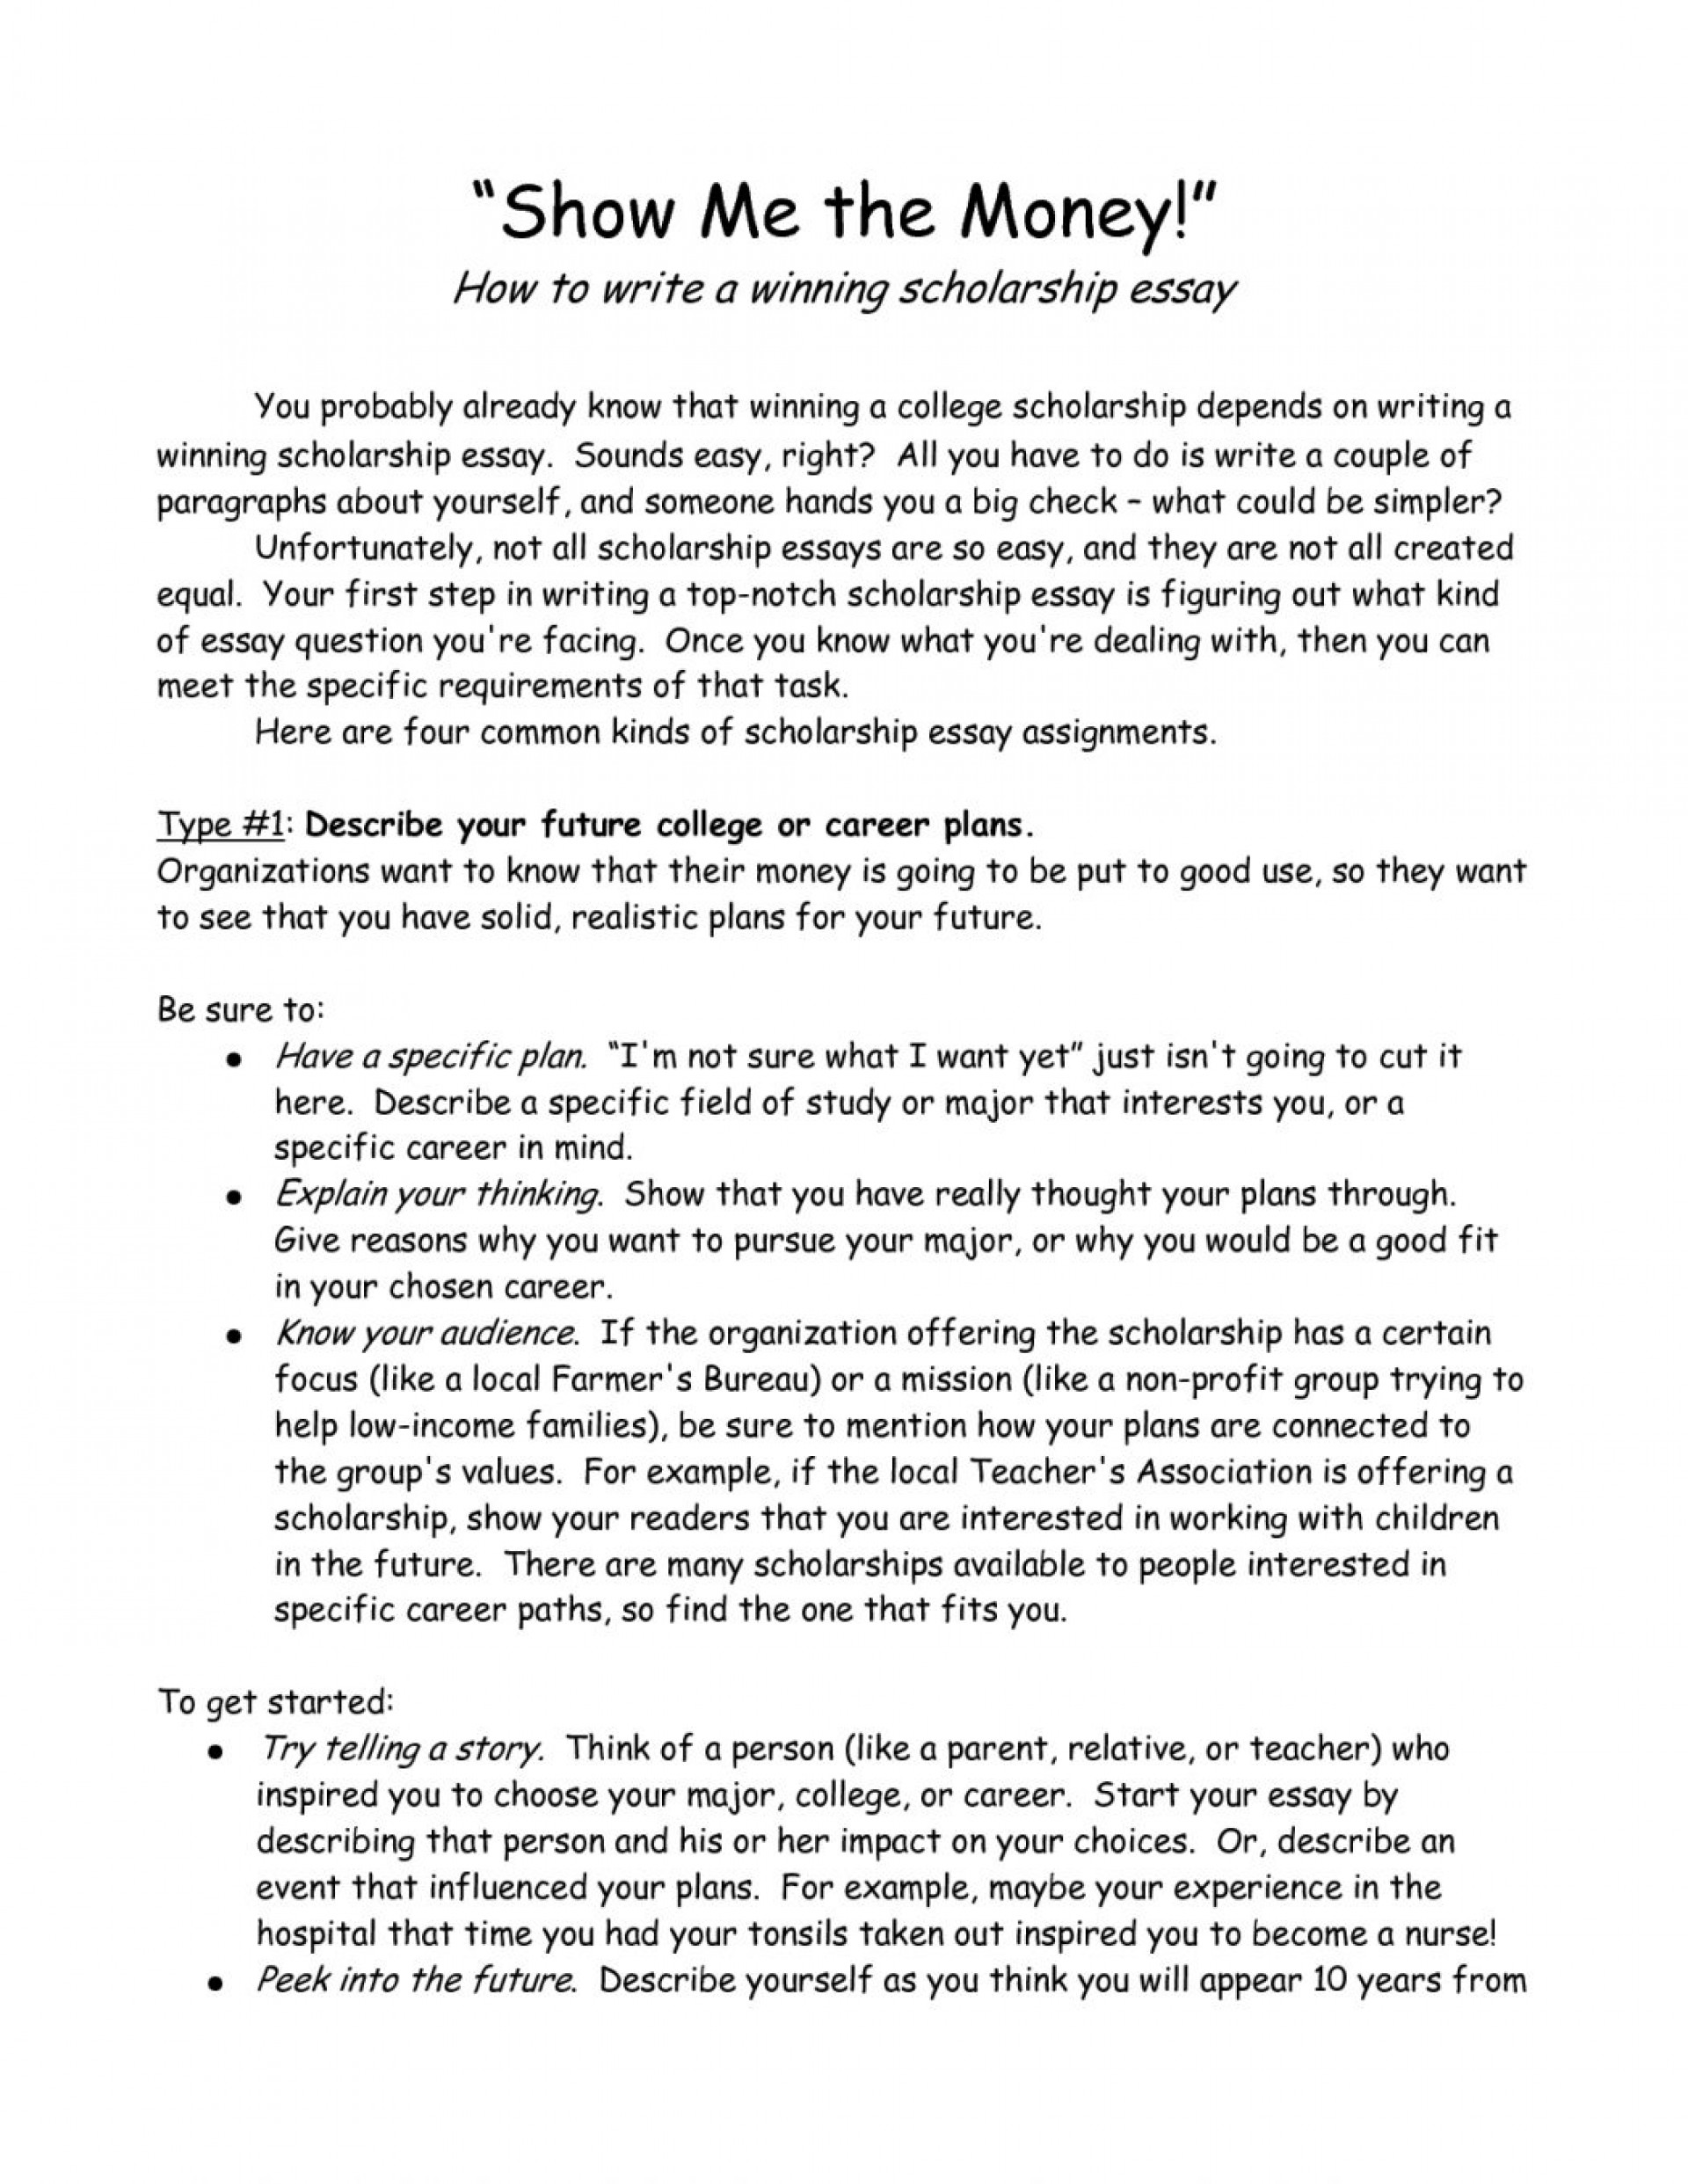 004 Essay Example Scholarships For College Students High School Student Resume Template No Experience Luxury Assignment Scholarship Examples Printables Corner Astounding 2019 2017 2018 1920